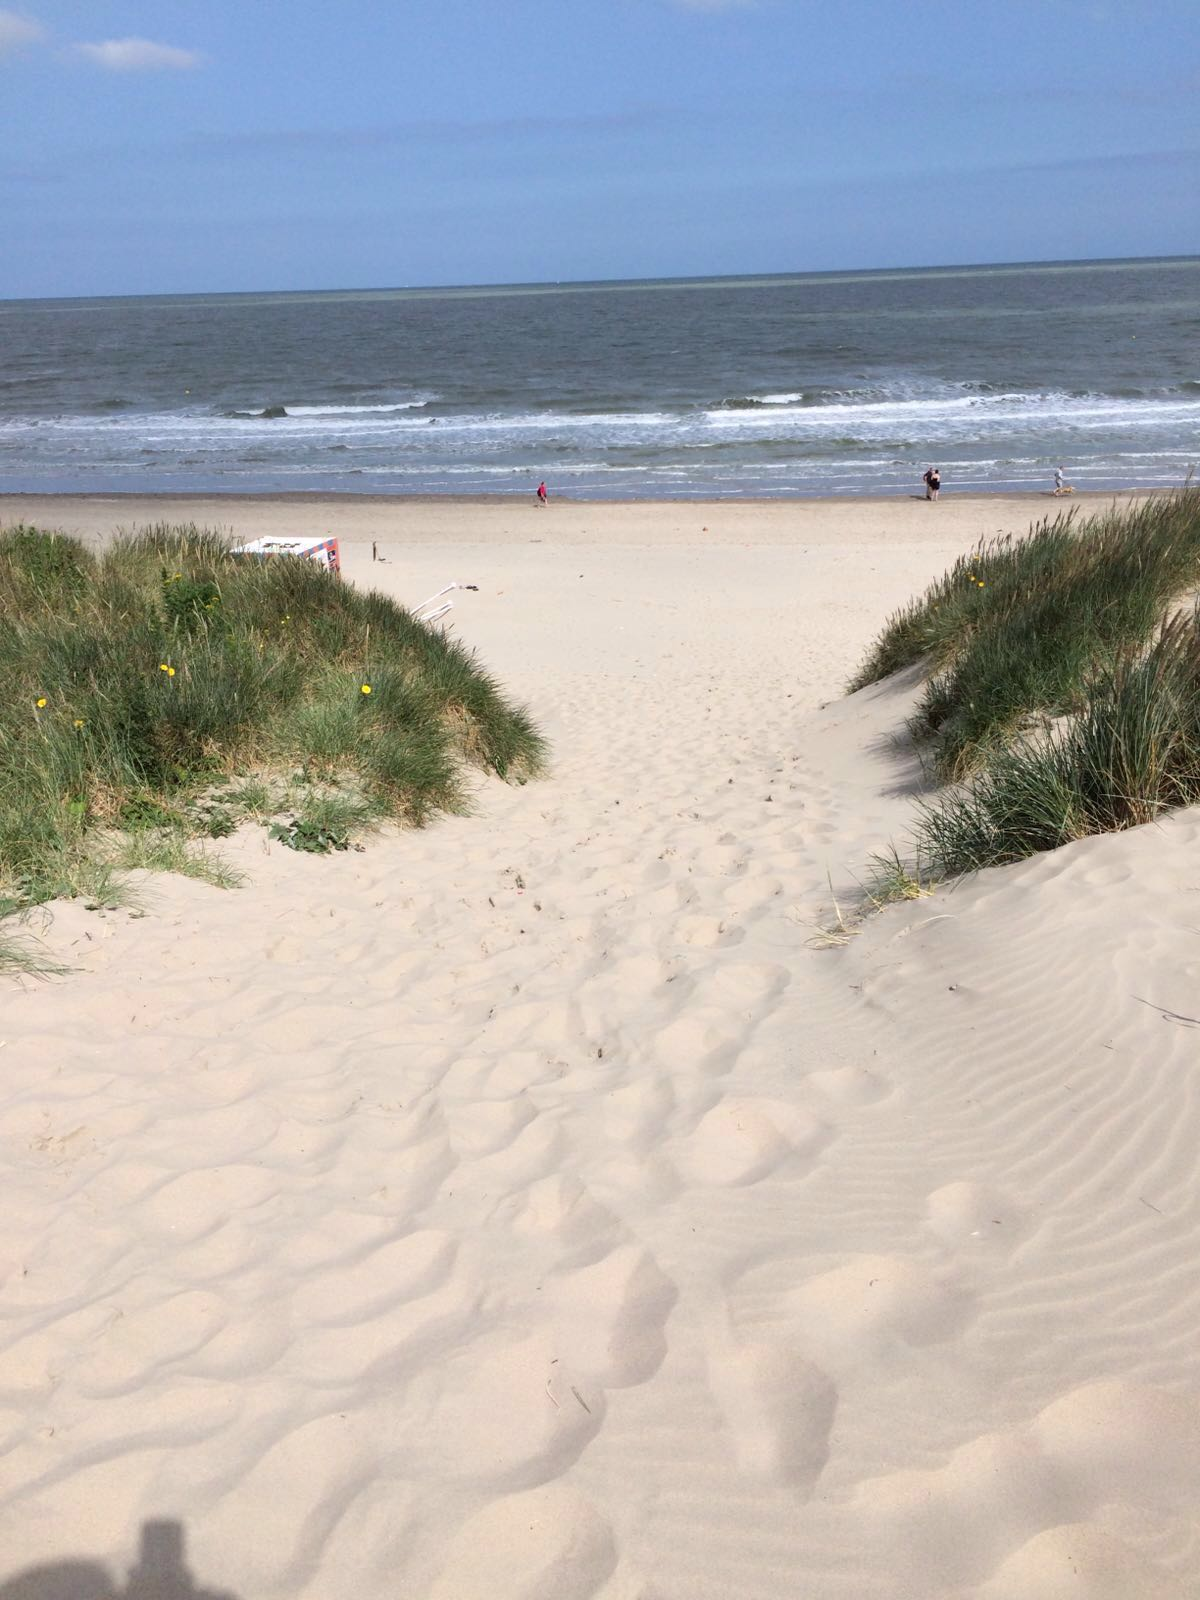 http://www.nordsee-chalet.com/wp-content/uploads/2017/03/IMG-20170218-WA0021.jpg